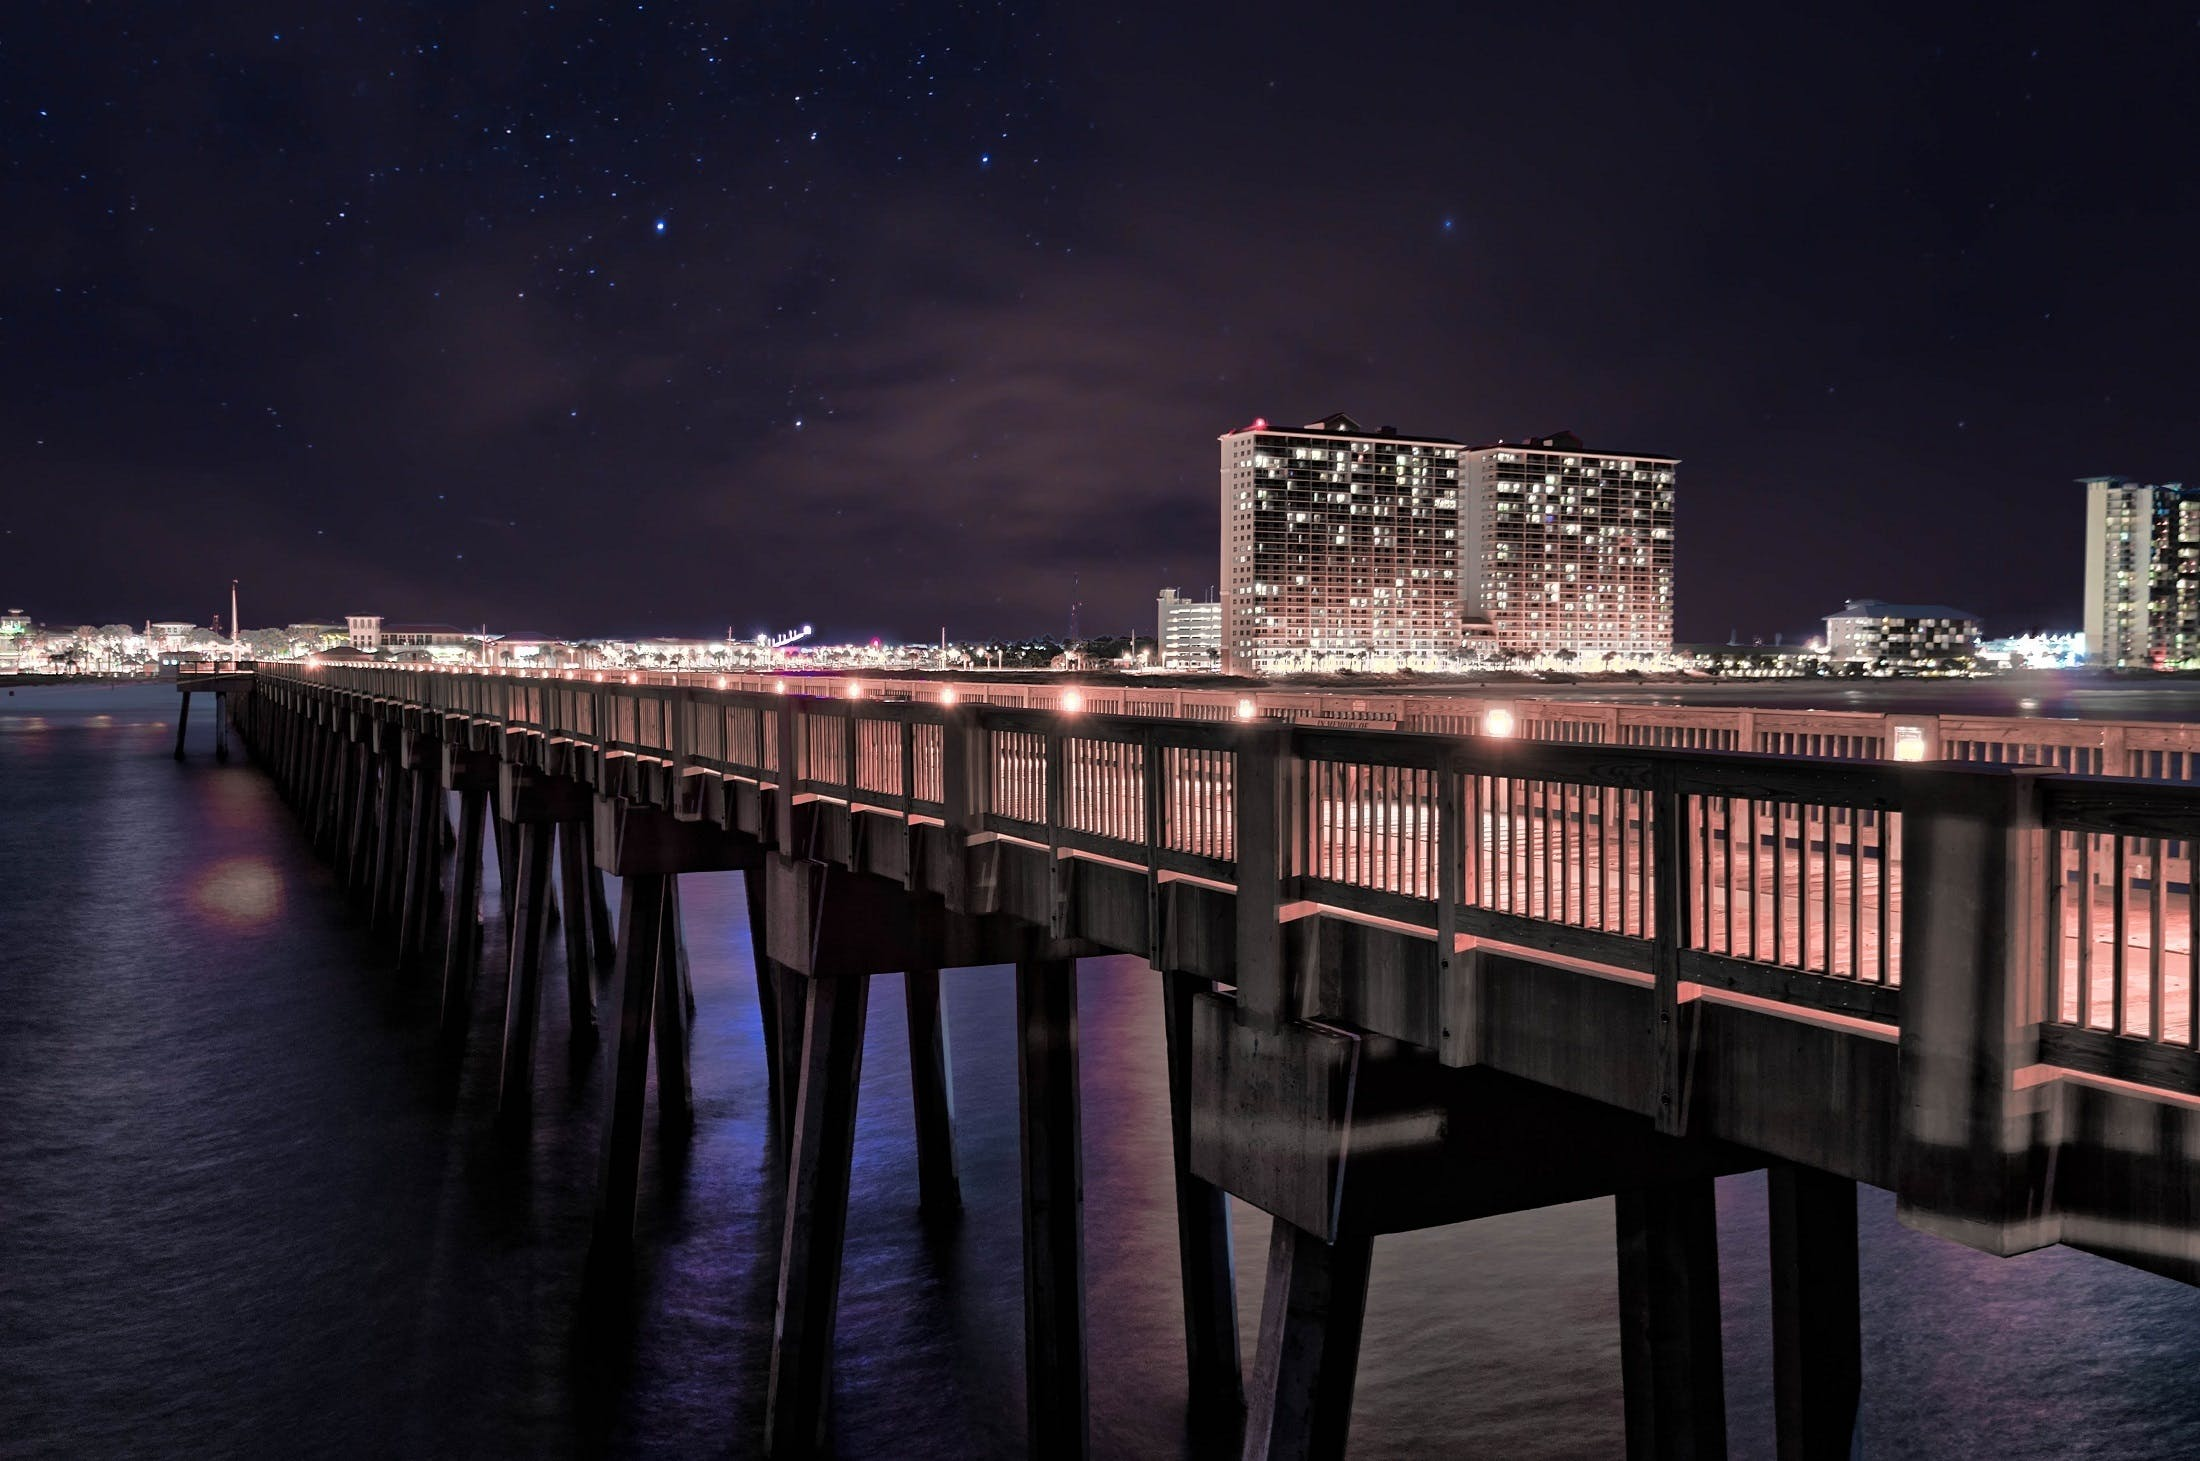 Bridge on Body of Water Near High Rise Building during Night Time Photo